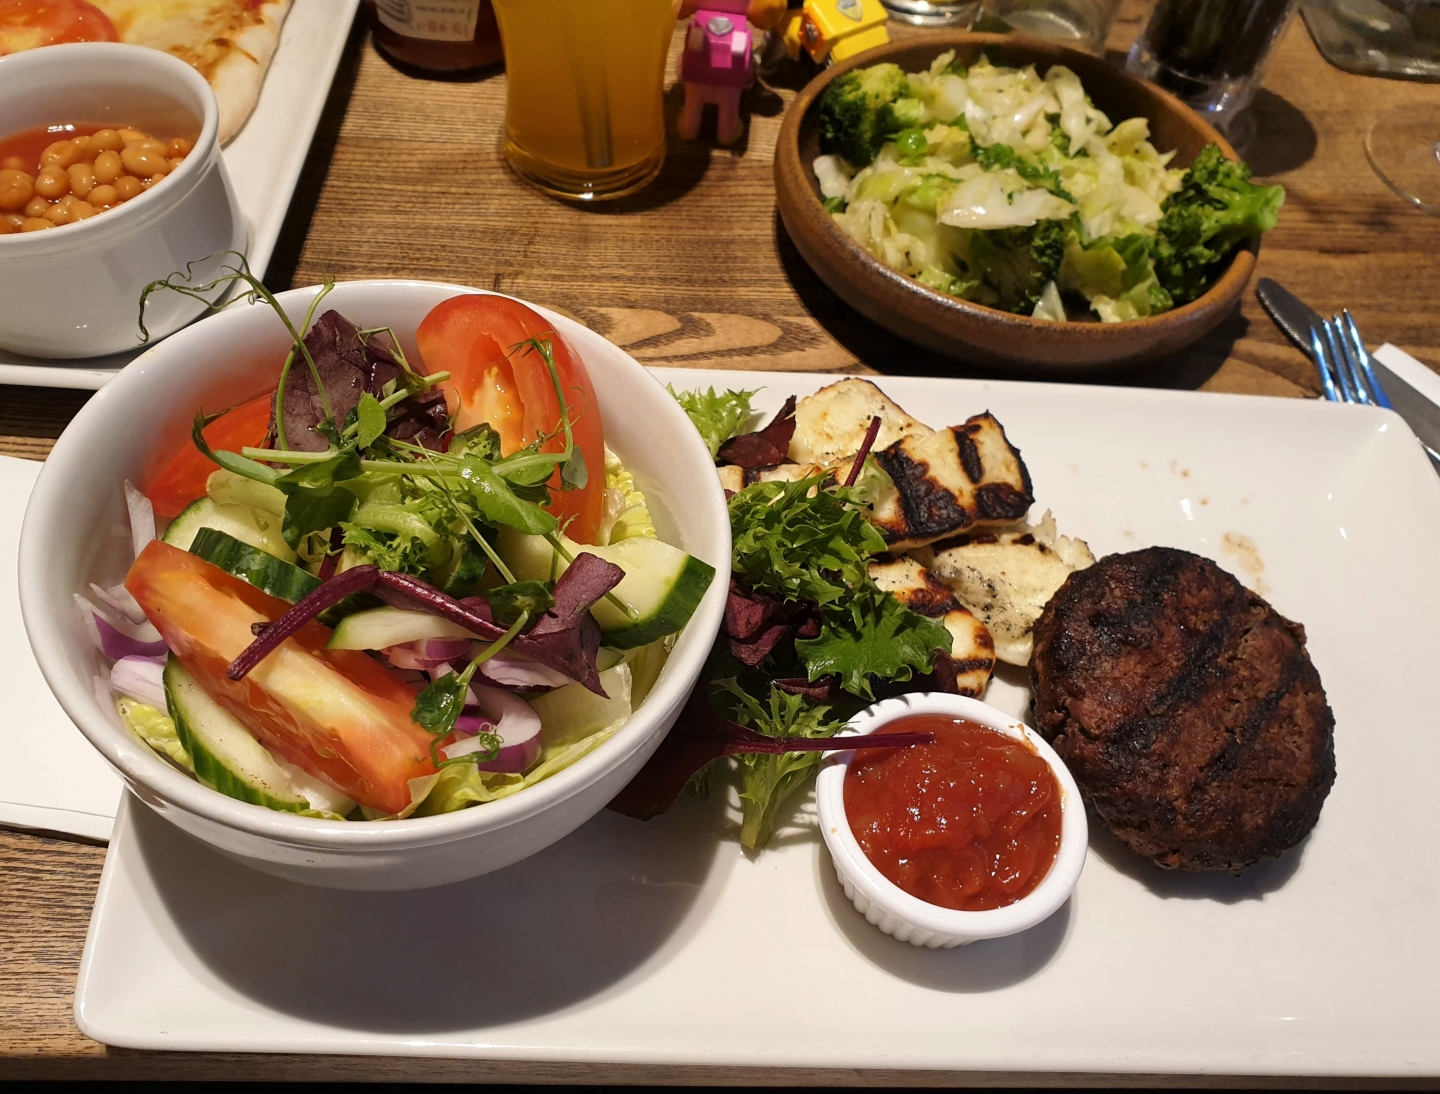 Waygu beef burger, salad and vegetables